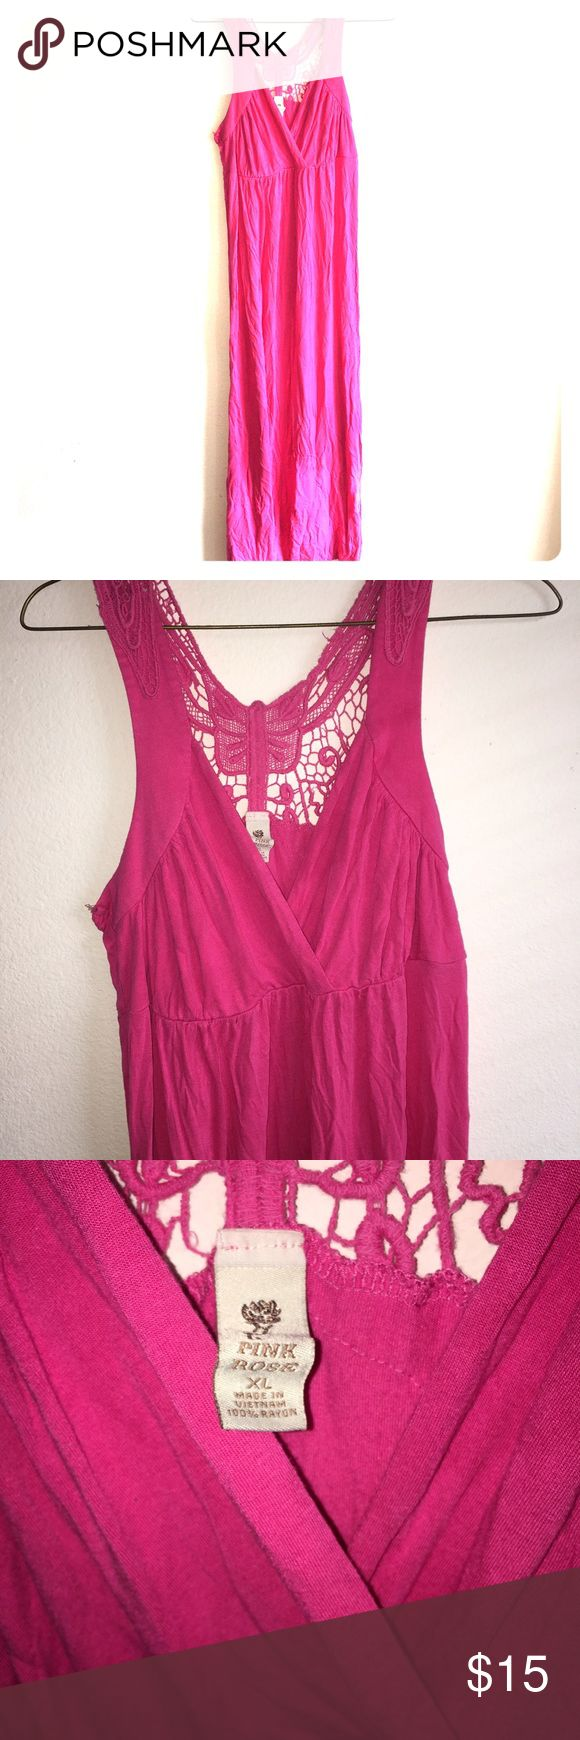 Maxi dress Women's XL maxi dress, V neck and cut out butterfly back, used but very beautiful good condition. Pink Rose Dresses Maxi